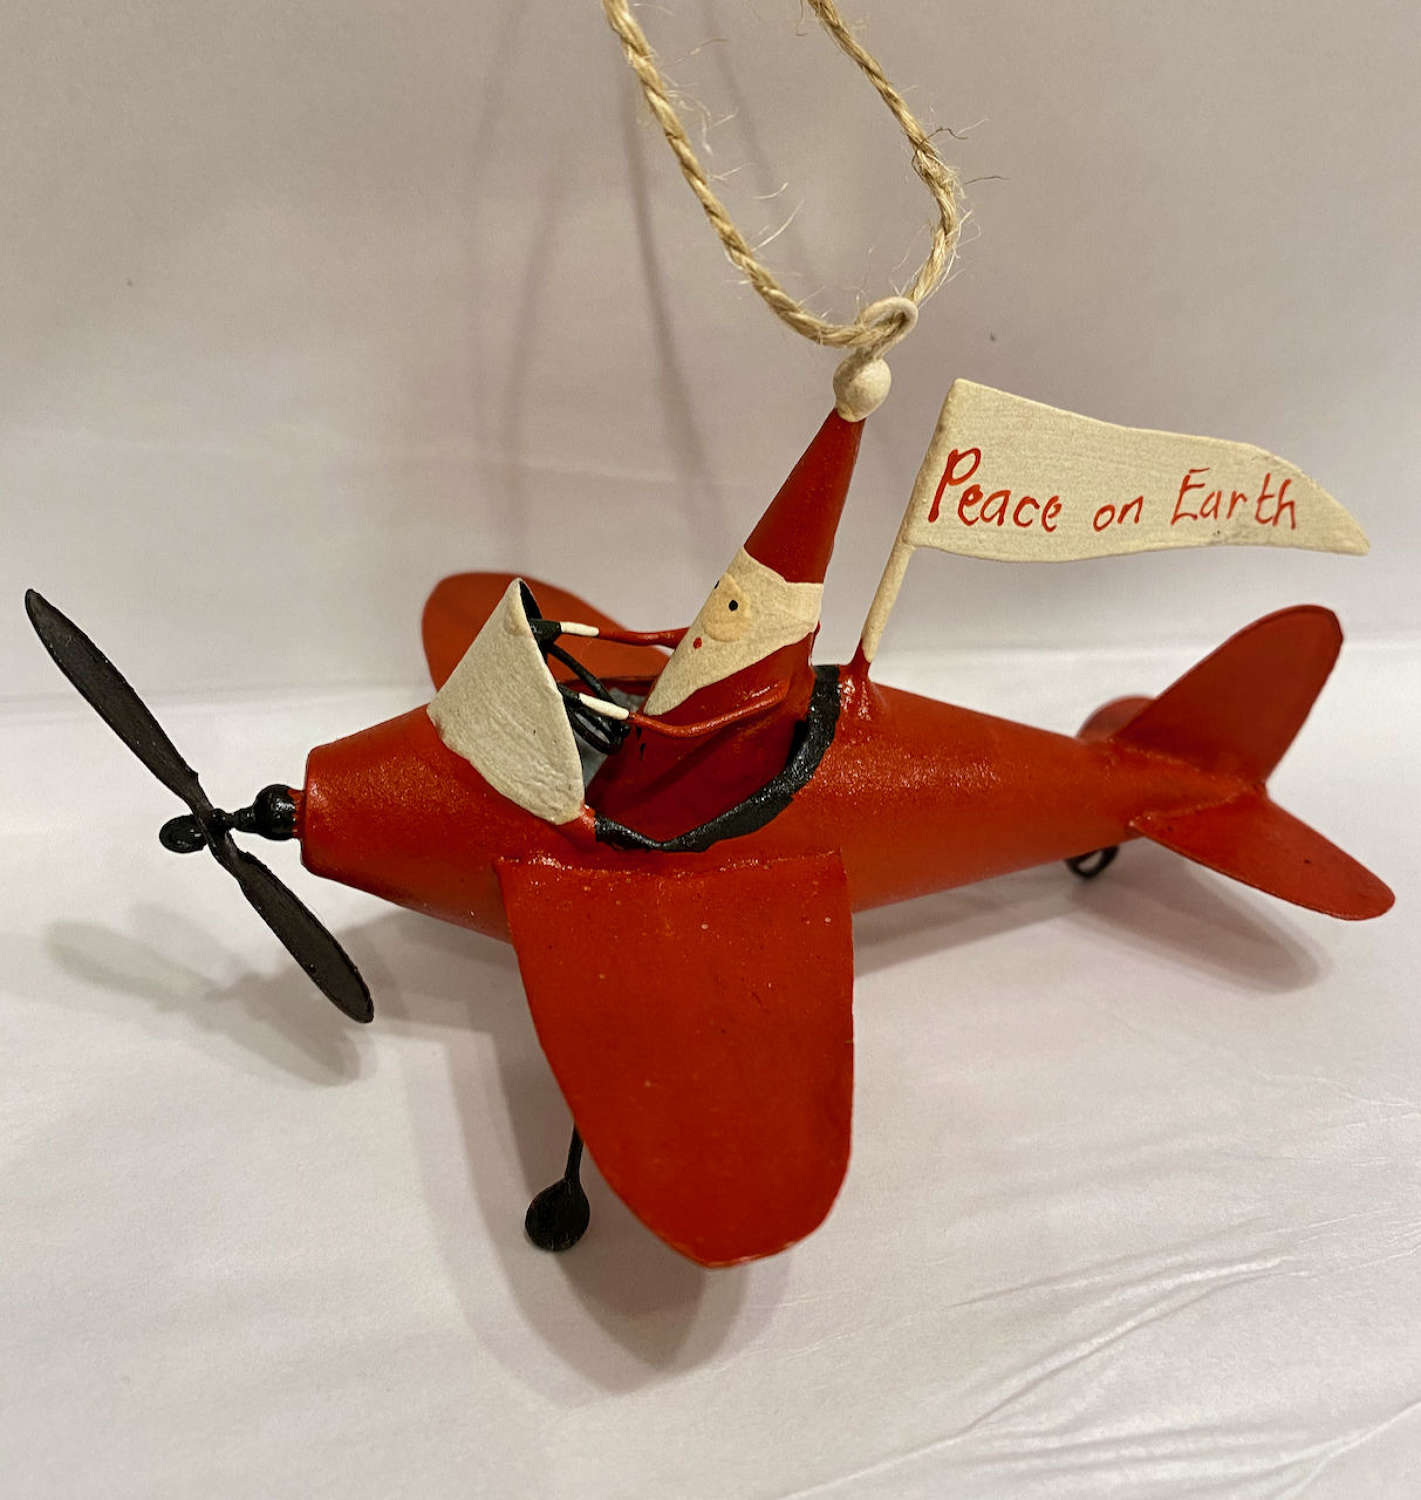 Tin Father Christmas in his Peace on Earth plane